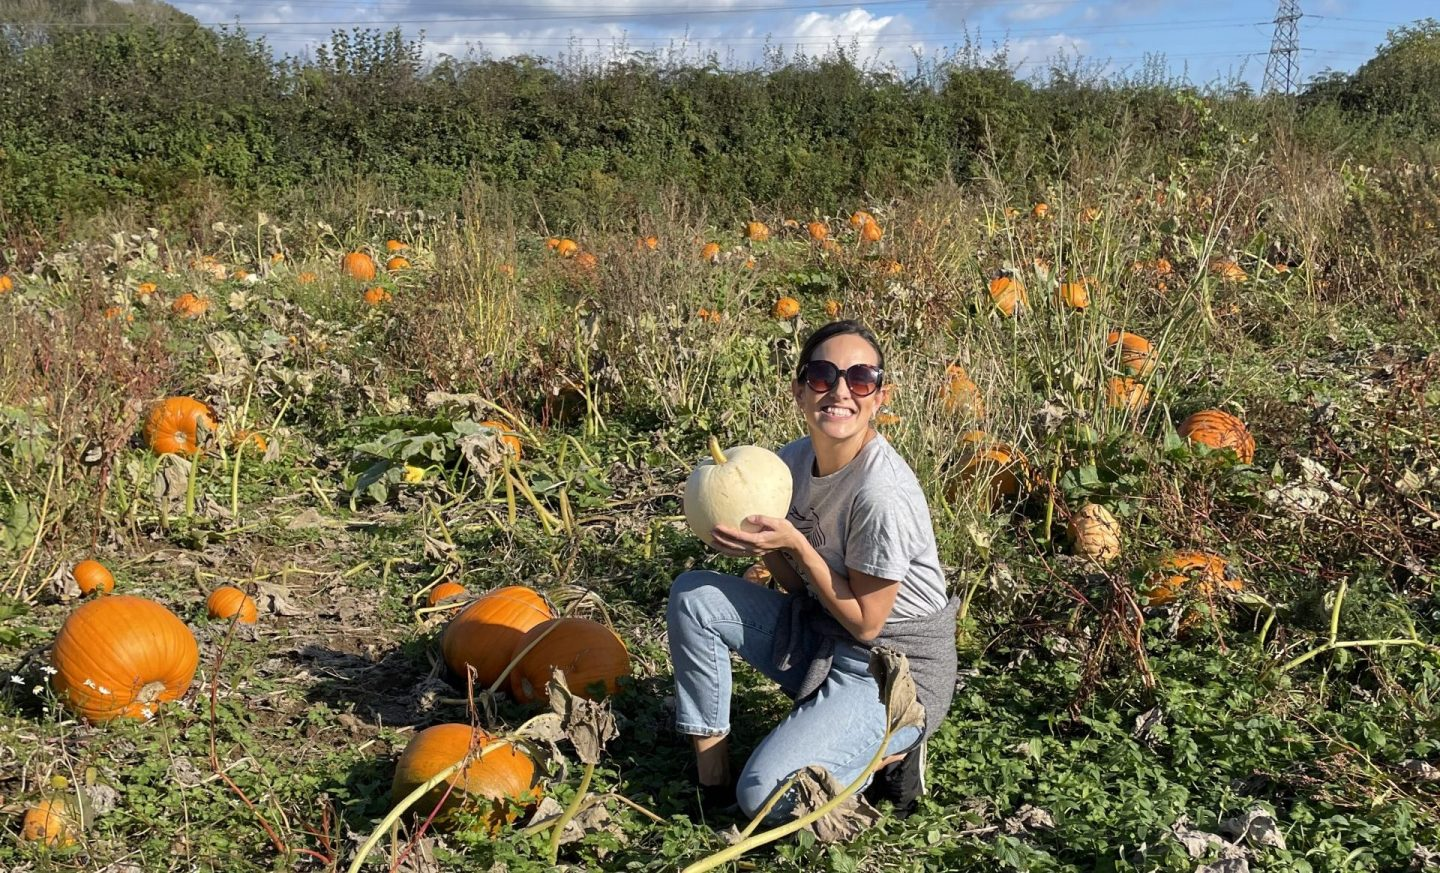 Where to Pick Your Own Pumpkins near Cardiff